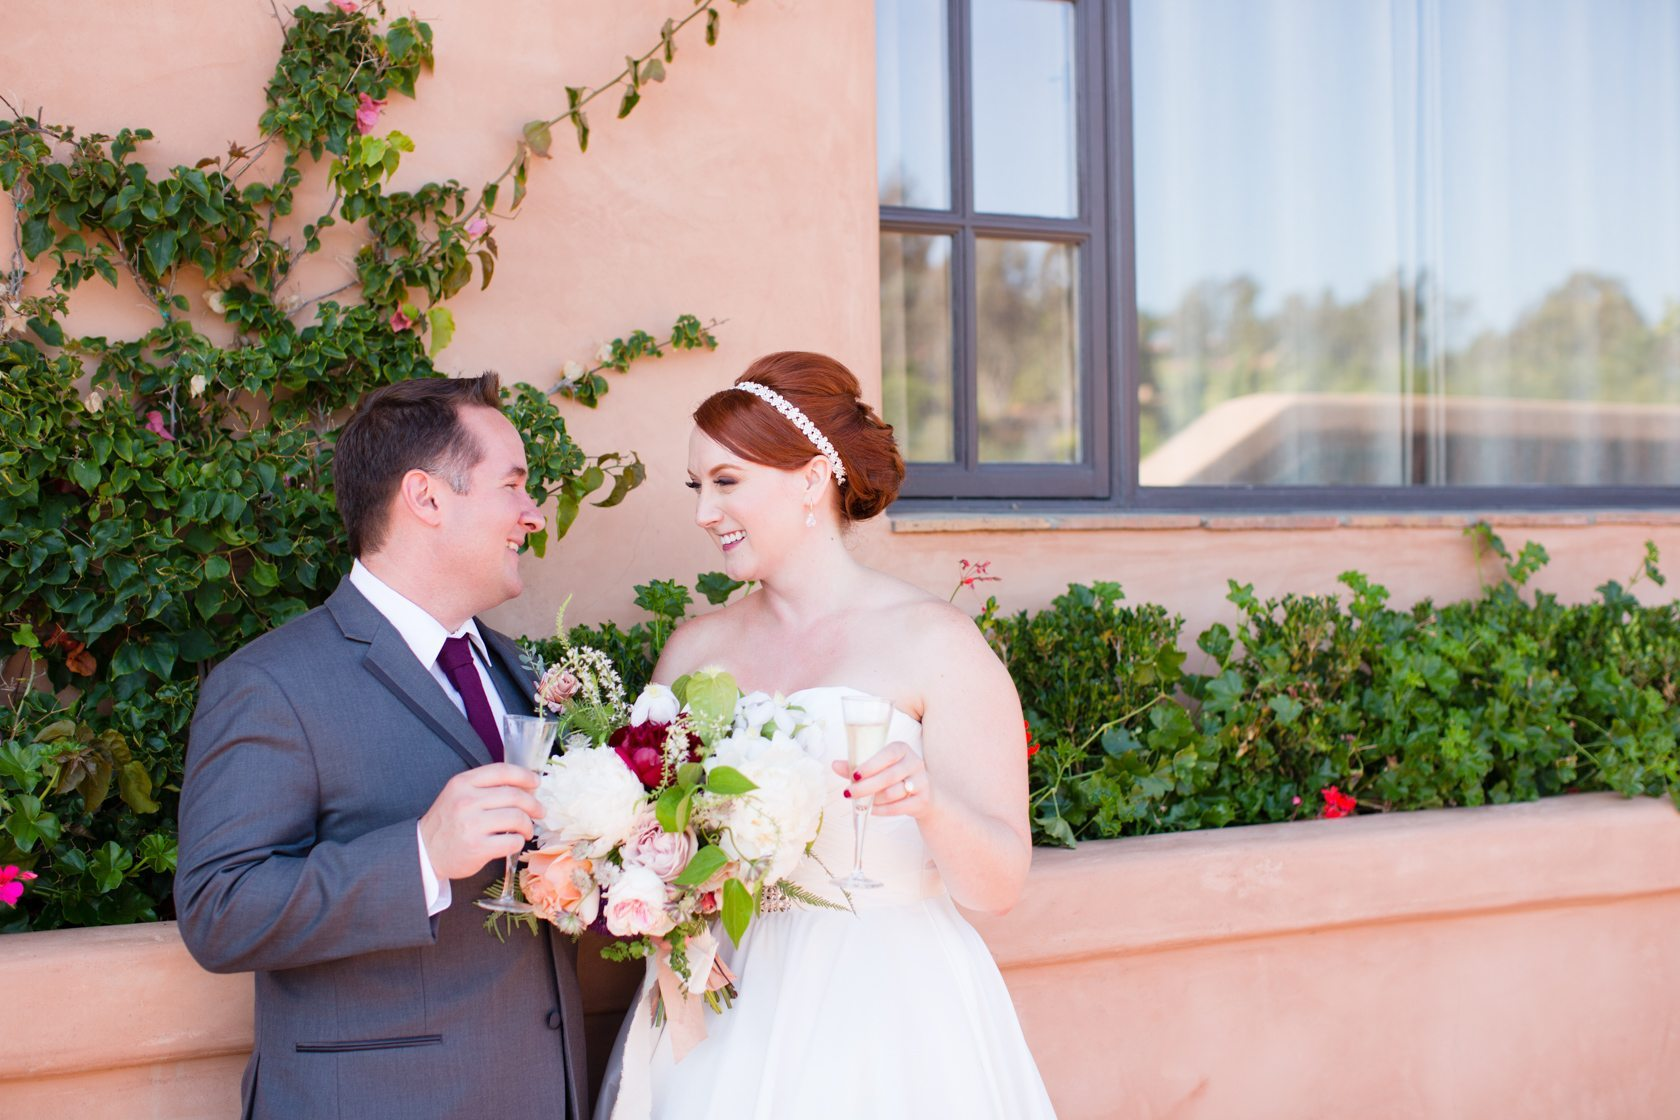 Elegant_Rancho_Valencia_Wedding_058.jpg